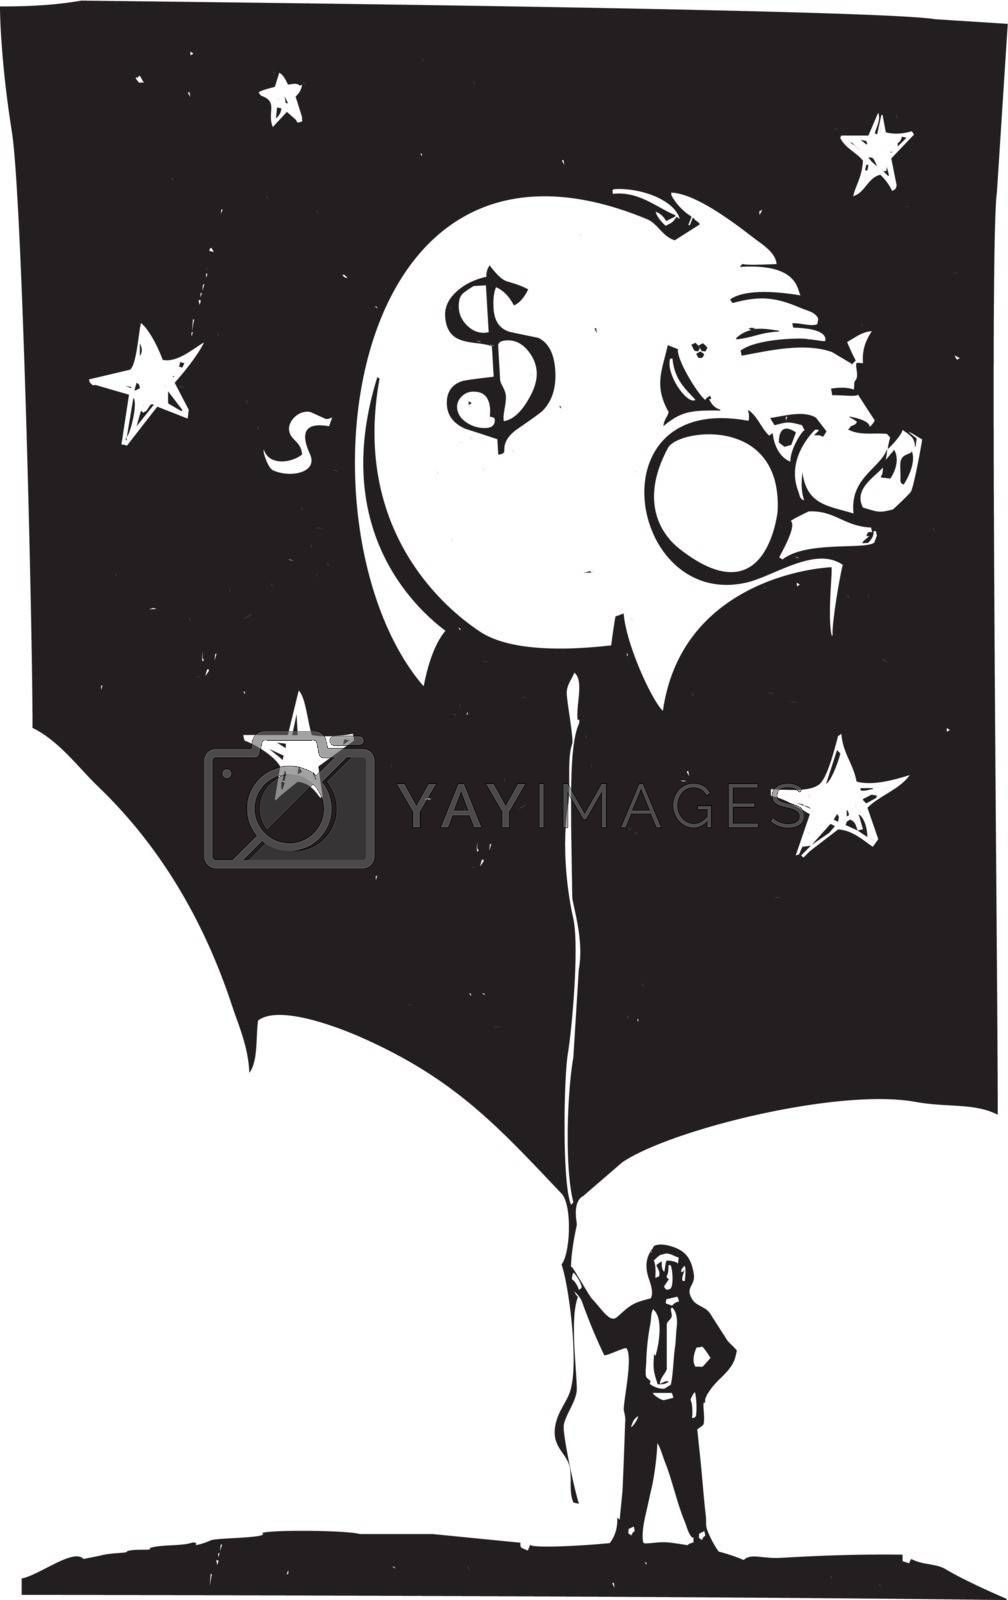 Woodcut style image of a man in a business suit holding a piggy bank shaped balloon